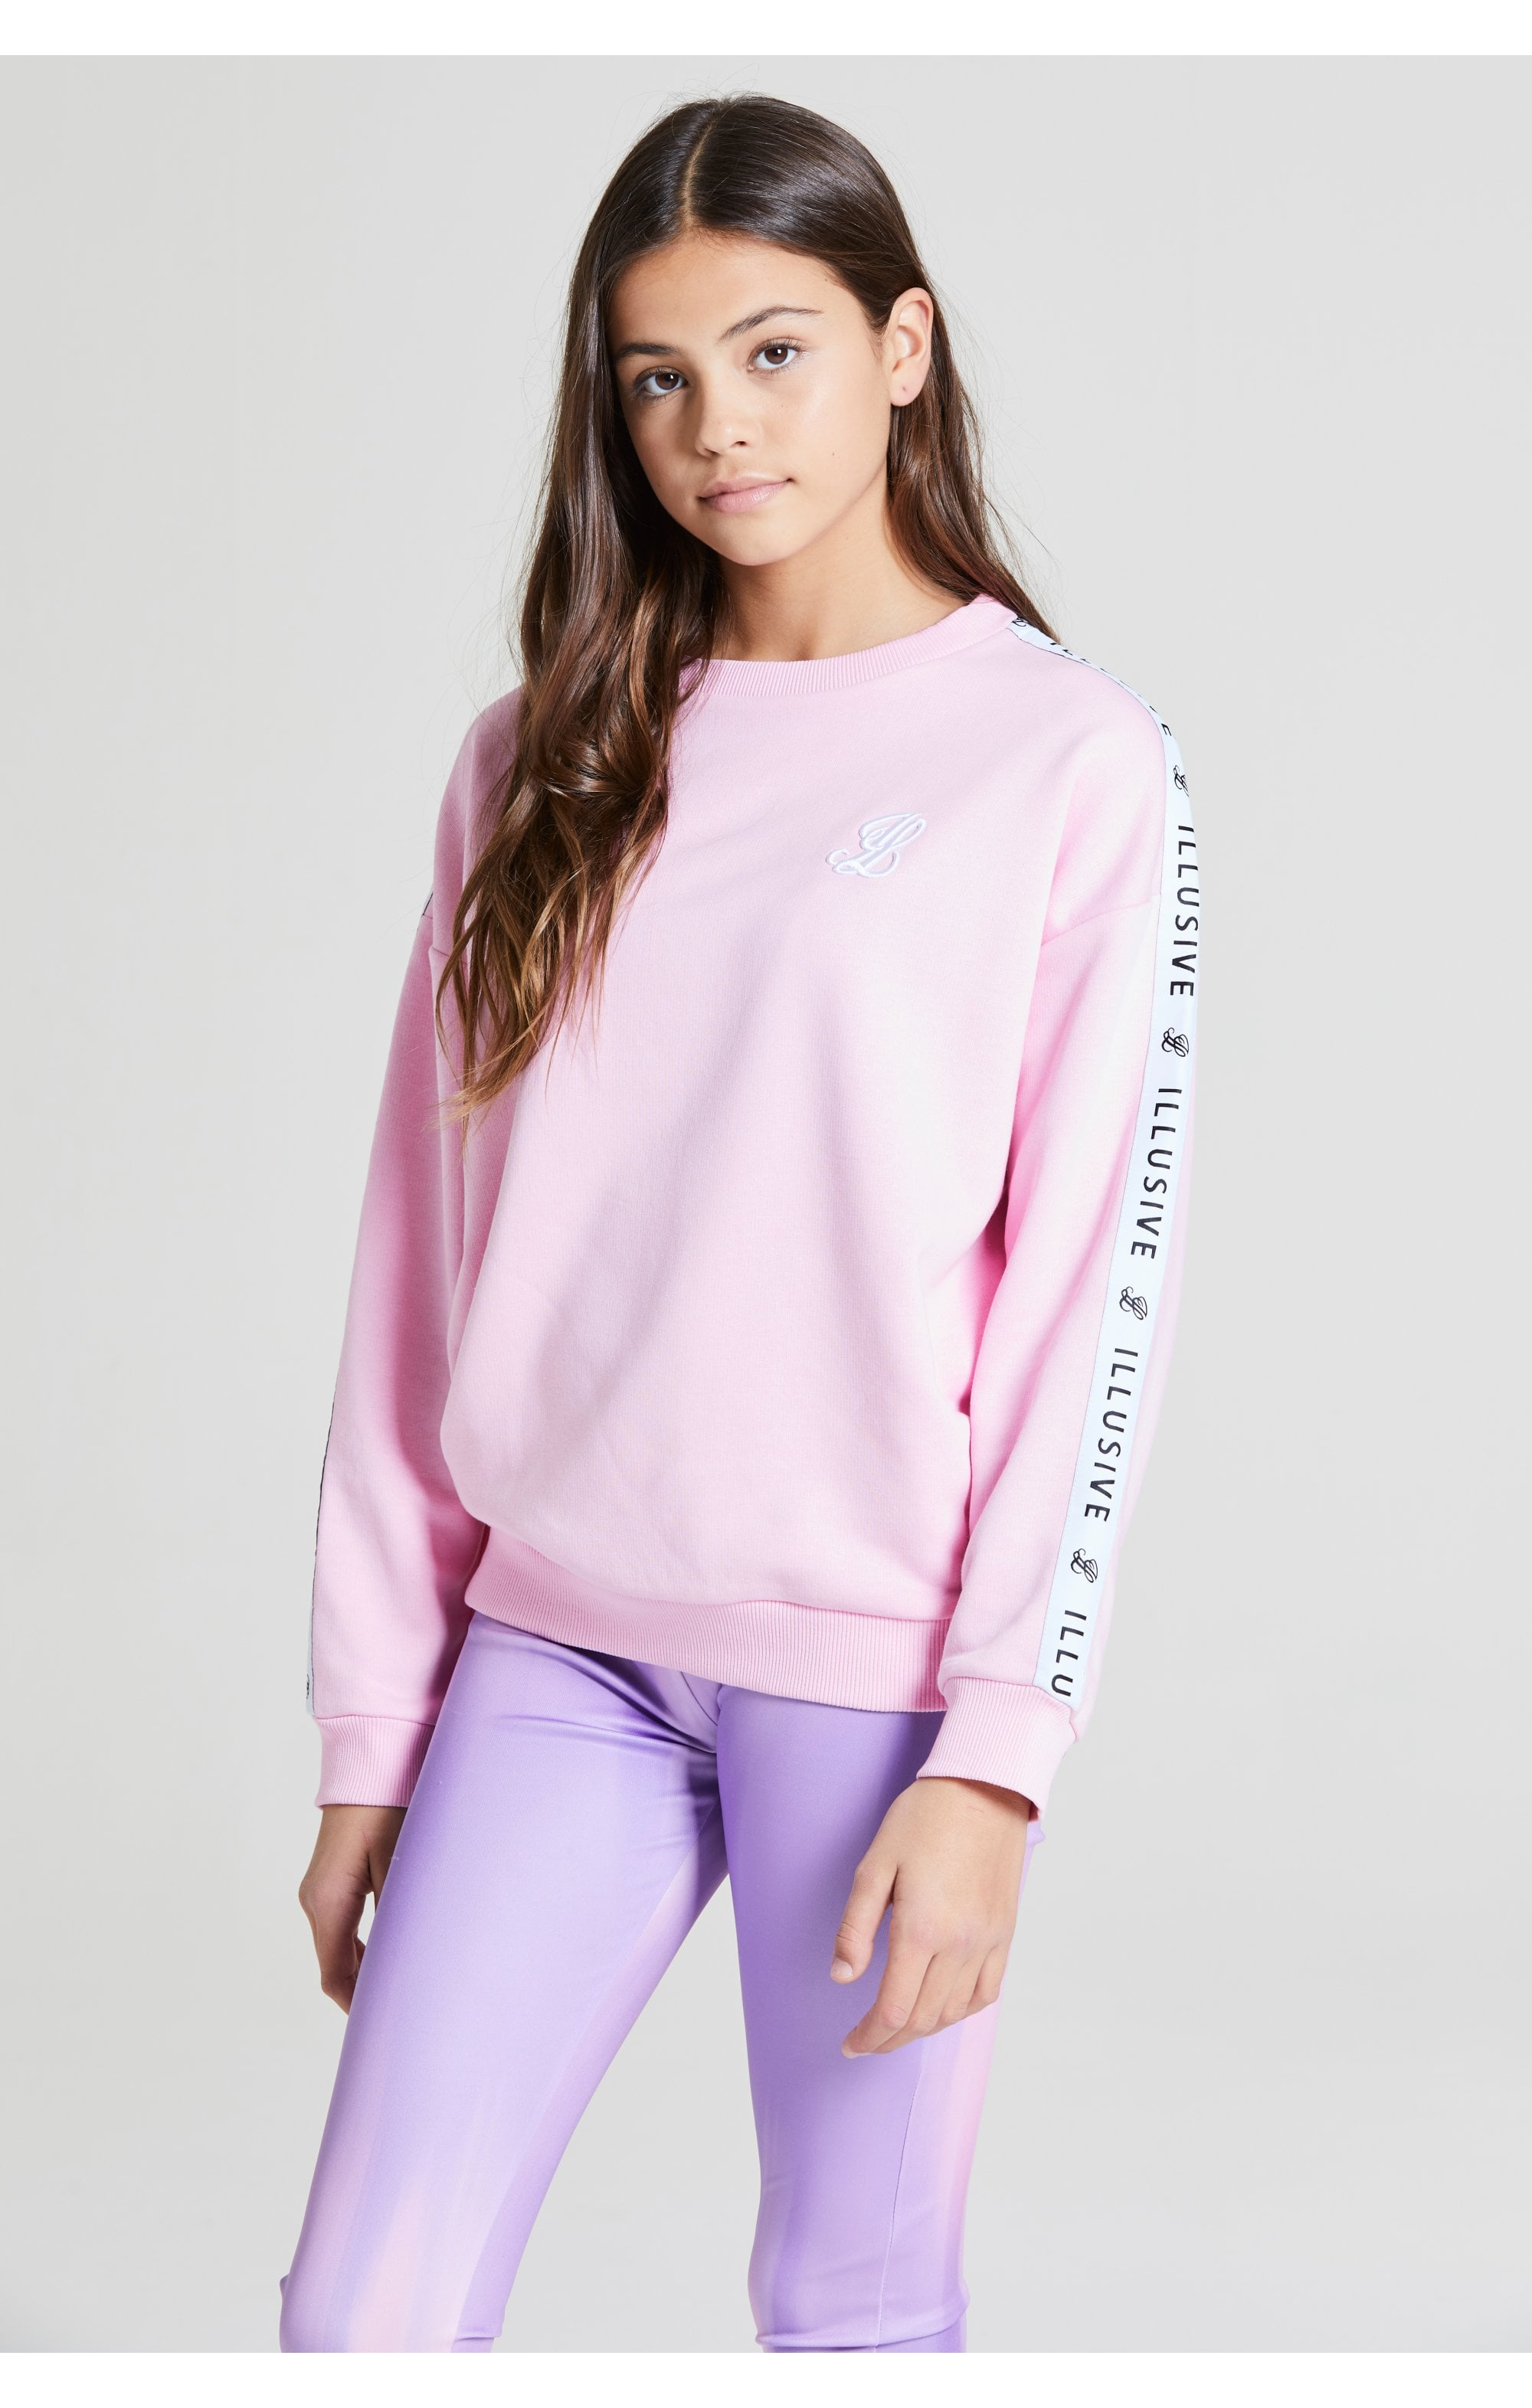 Illusive London Crew Neck Sweater - Pink (2)